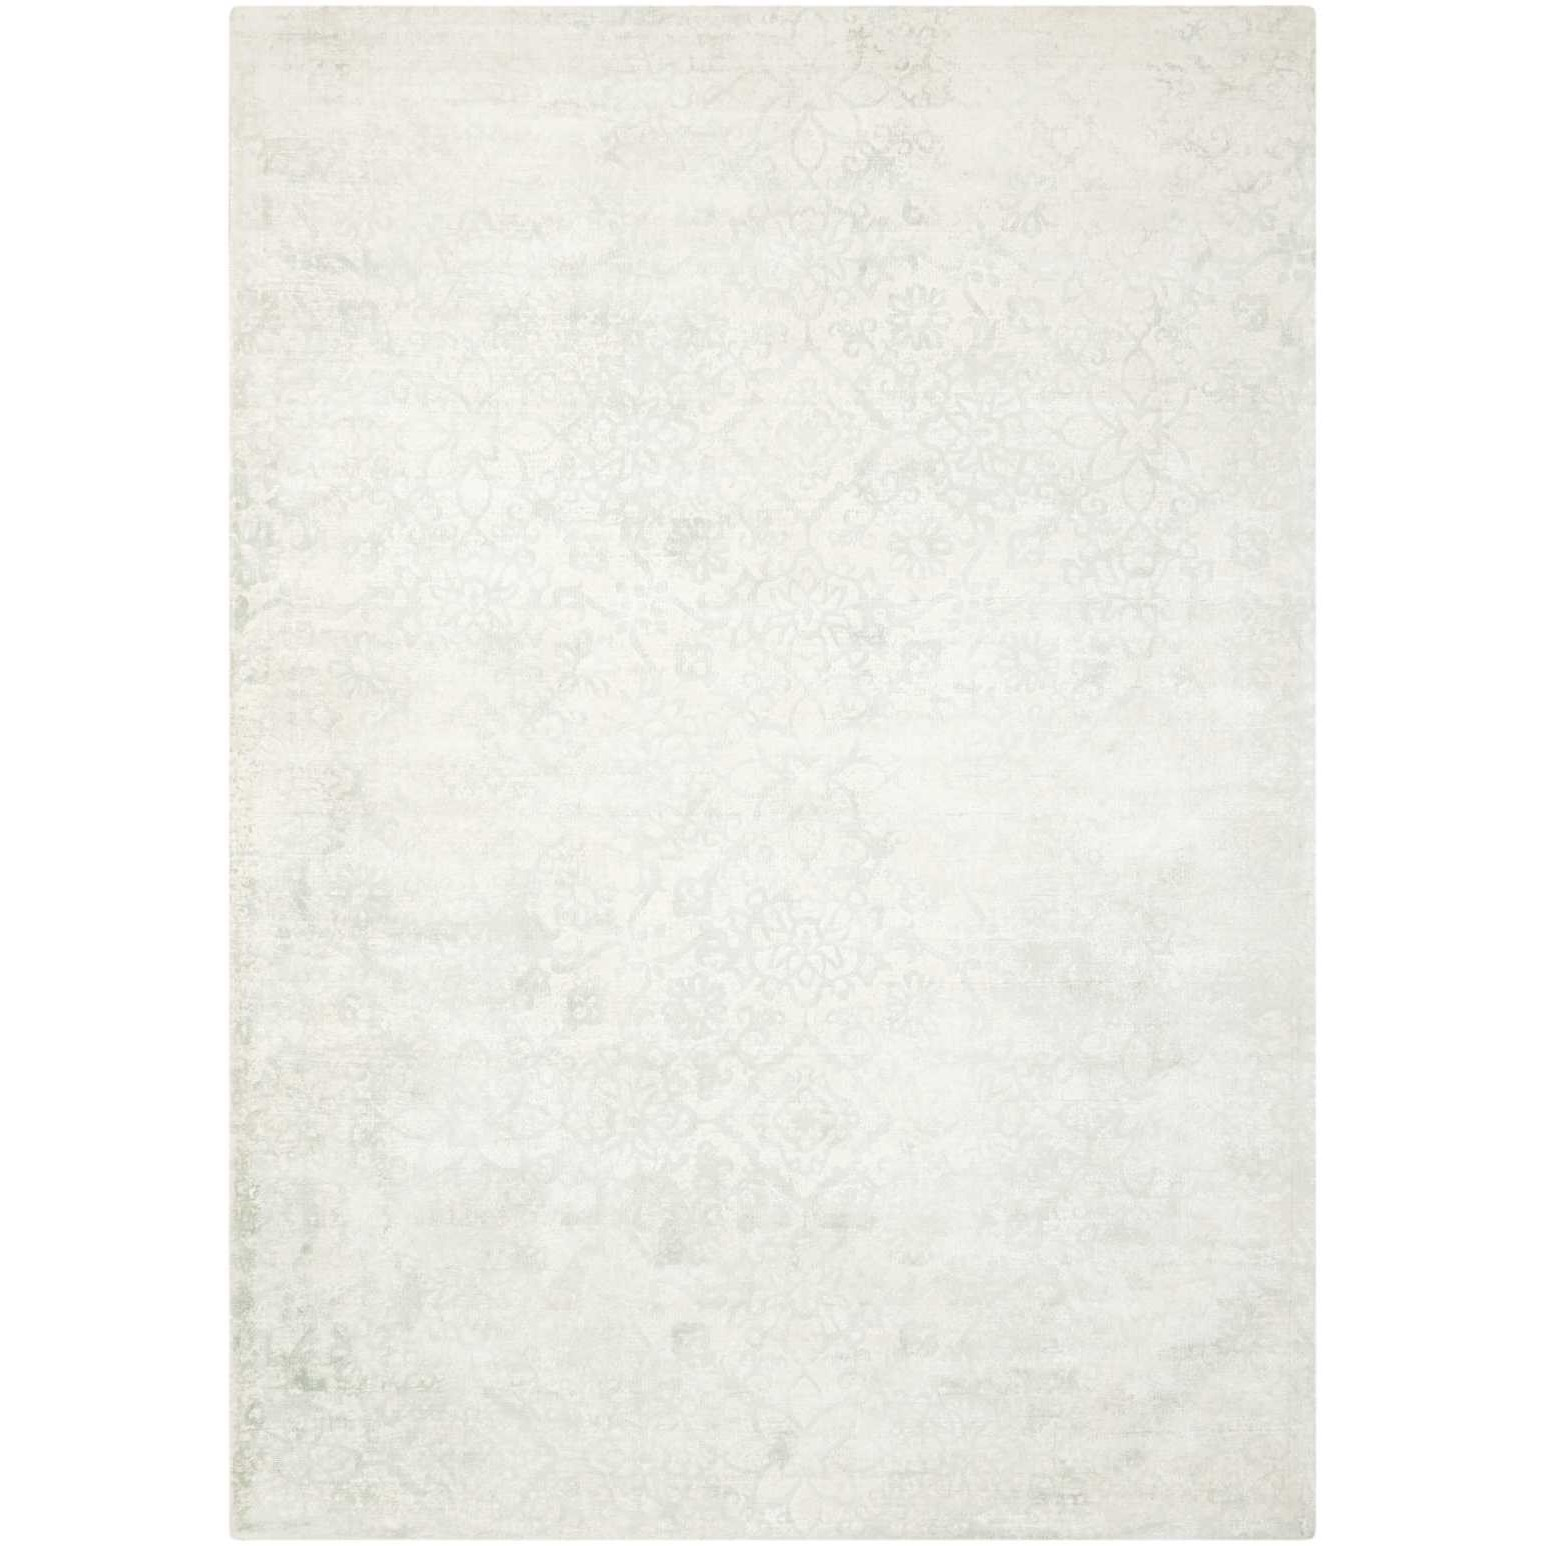 Desert Skies 8' x 11' Rug by kathy ireland Home by Nourison at Home Collections Furniture